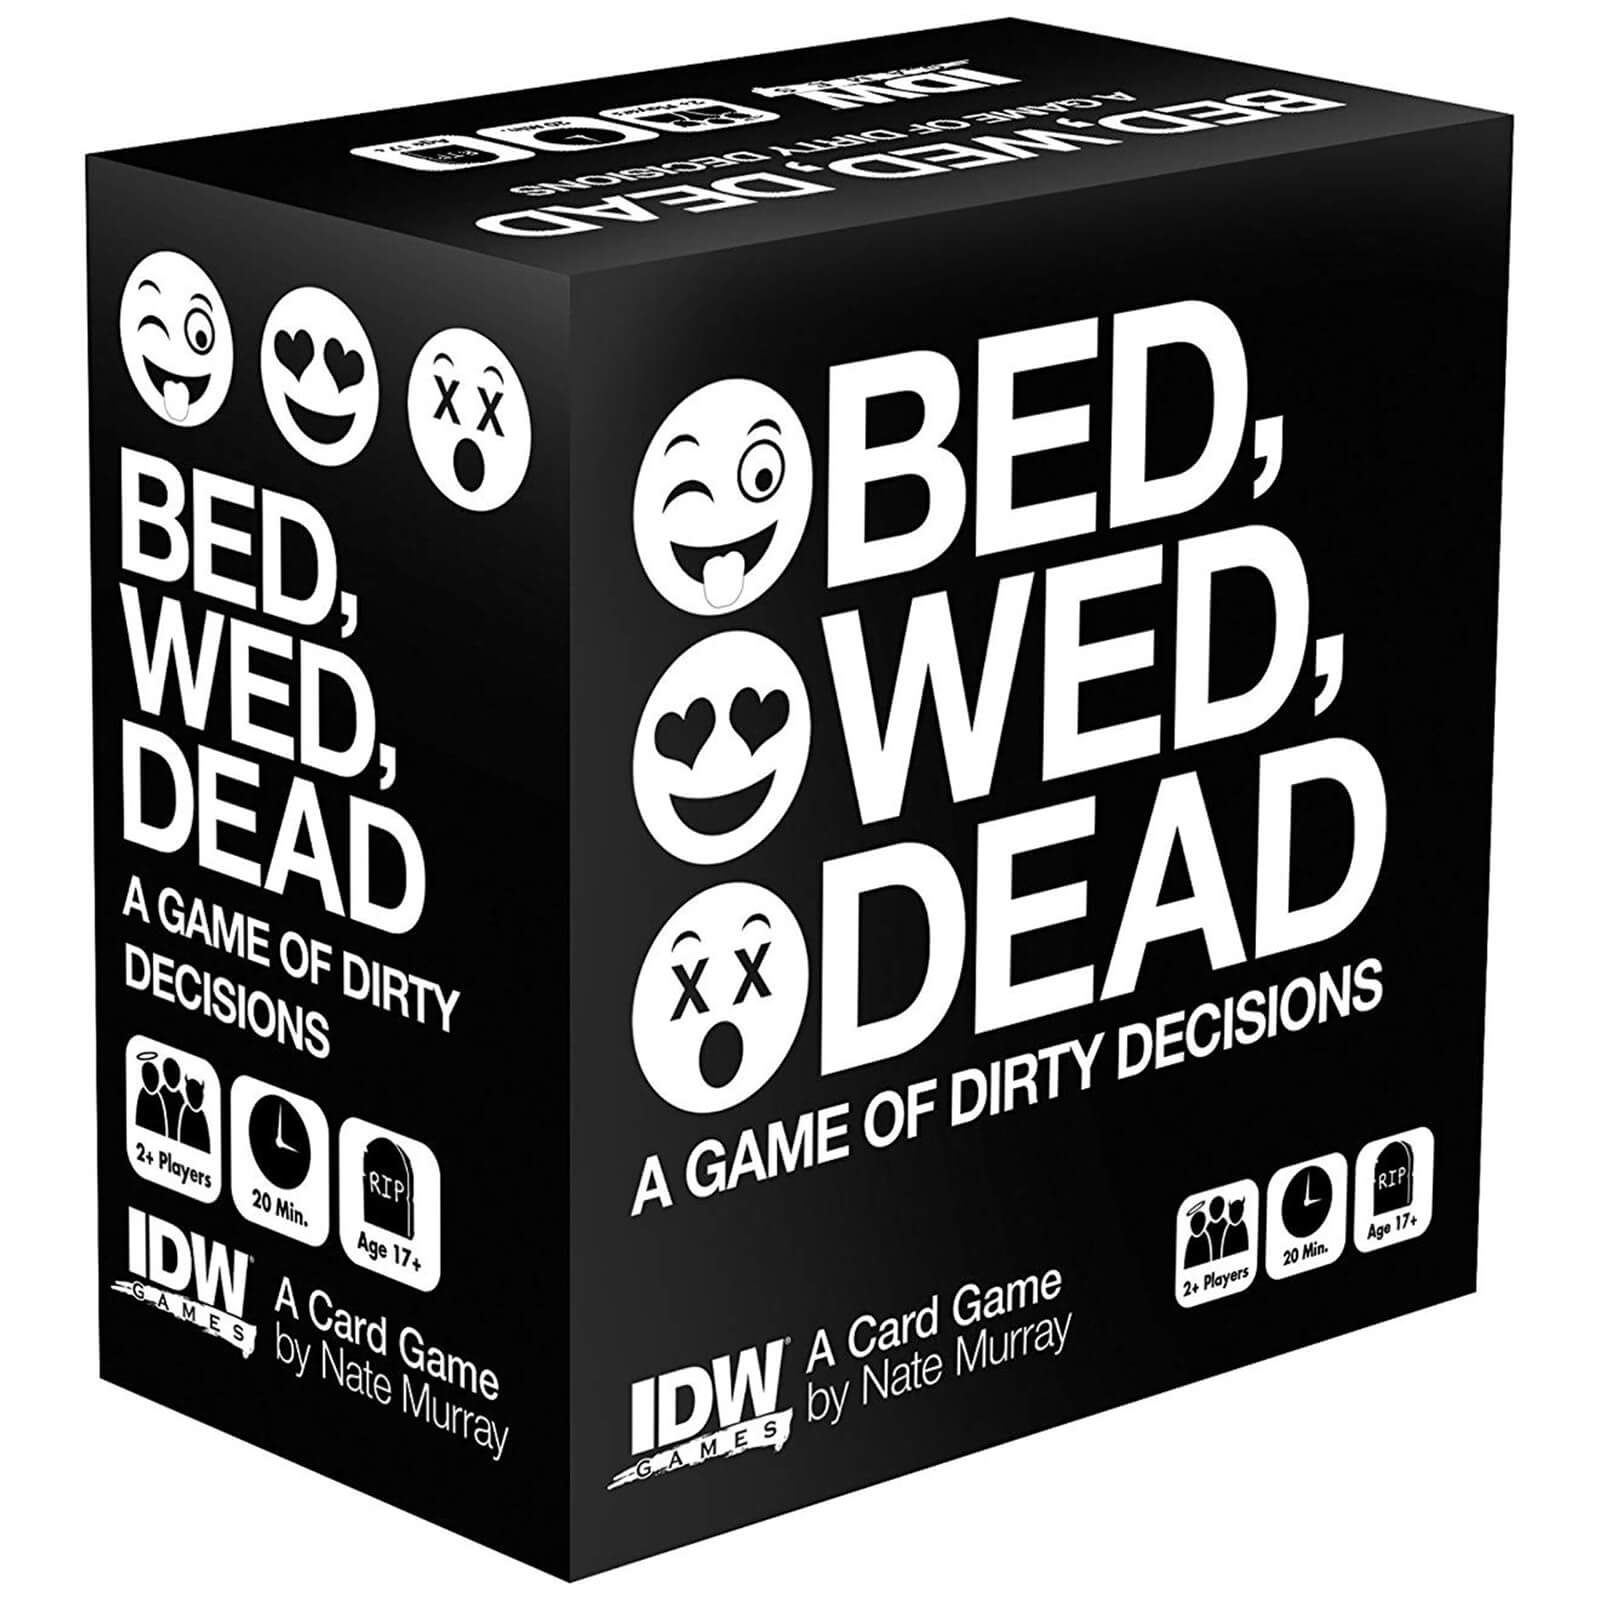 Image of Bed Wed Dead Card Game